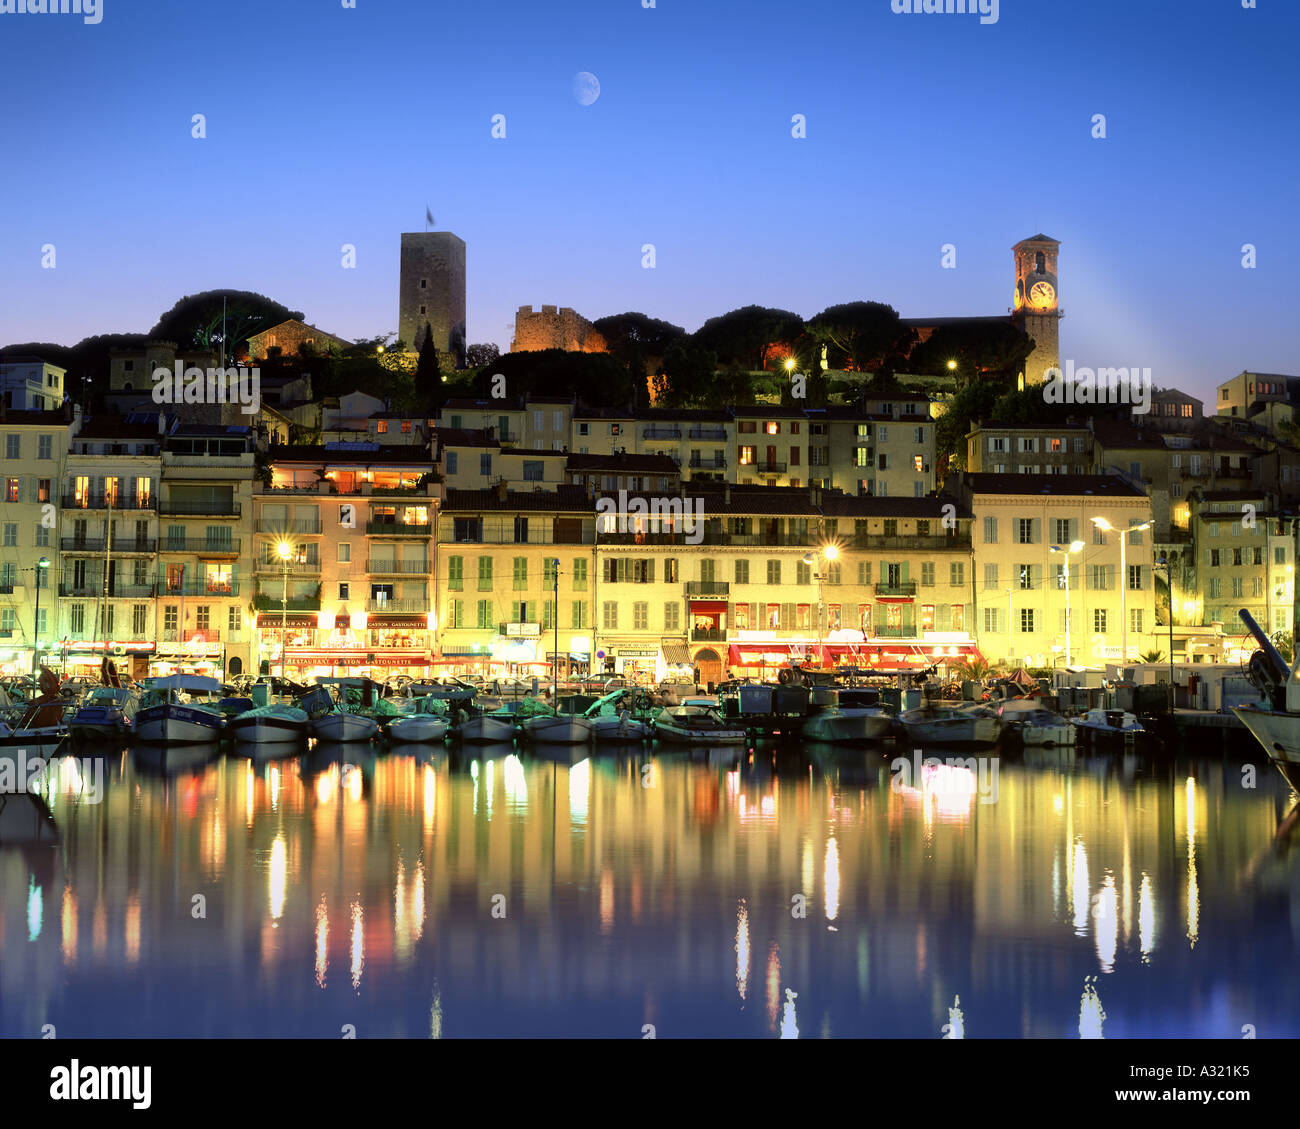 FR - COTE D'AZUR: Cannes by night - Stock Image